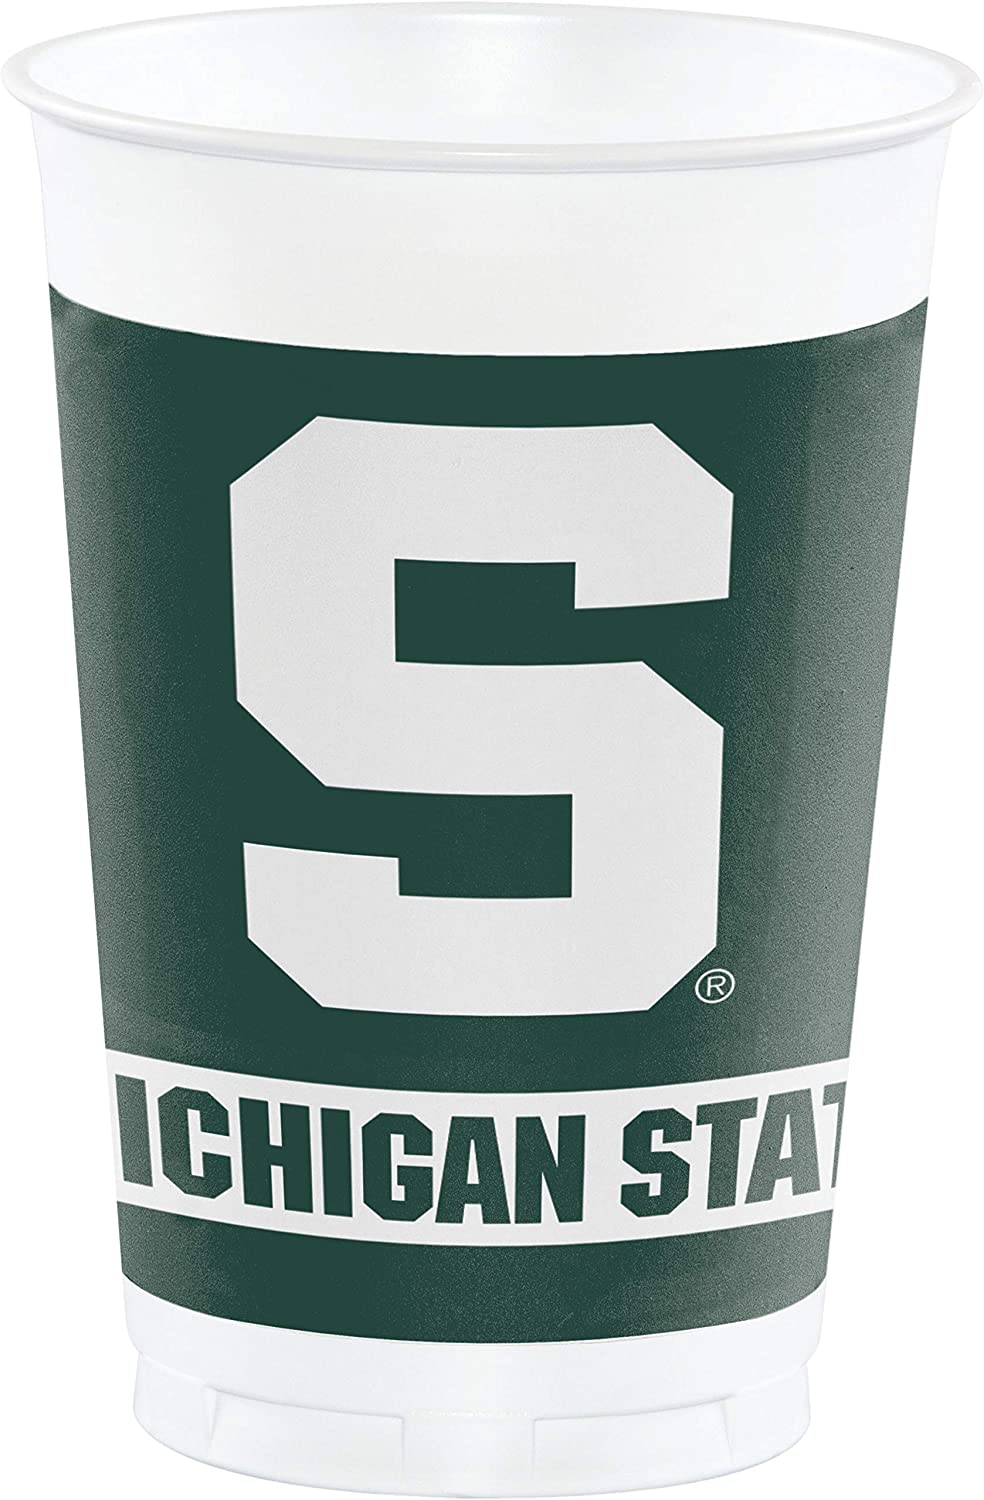 Michigan State Spartans 20 oz. Plastic Cups, 8-Count